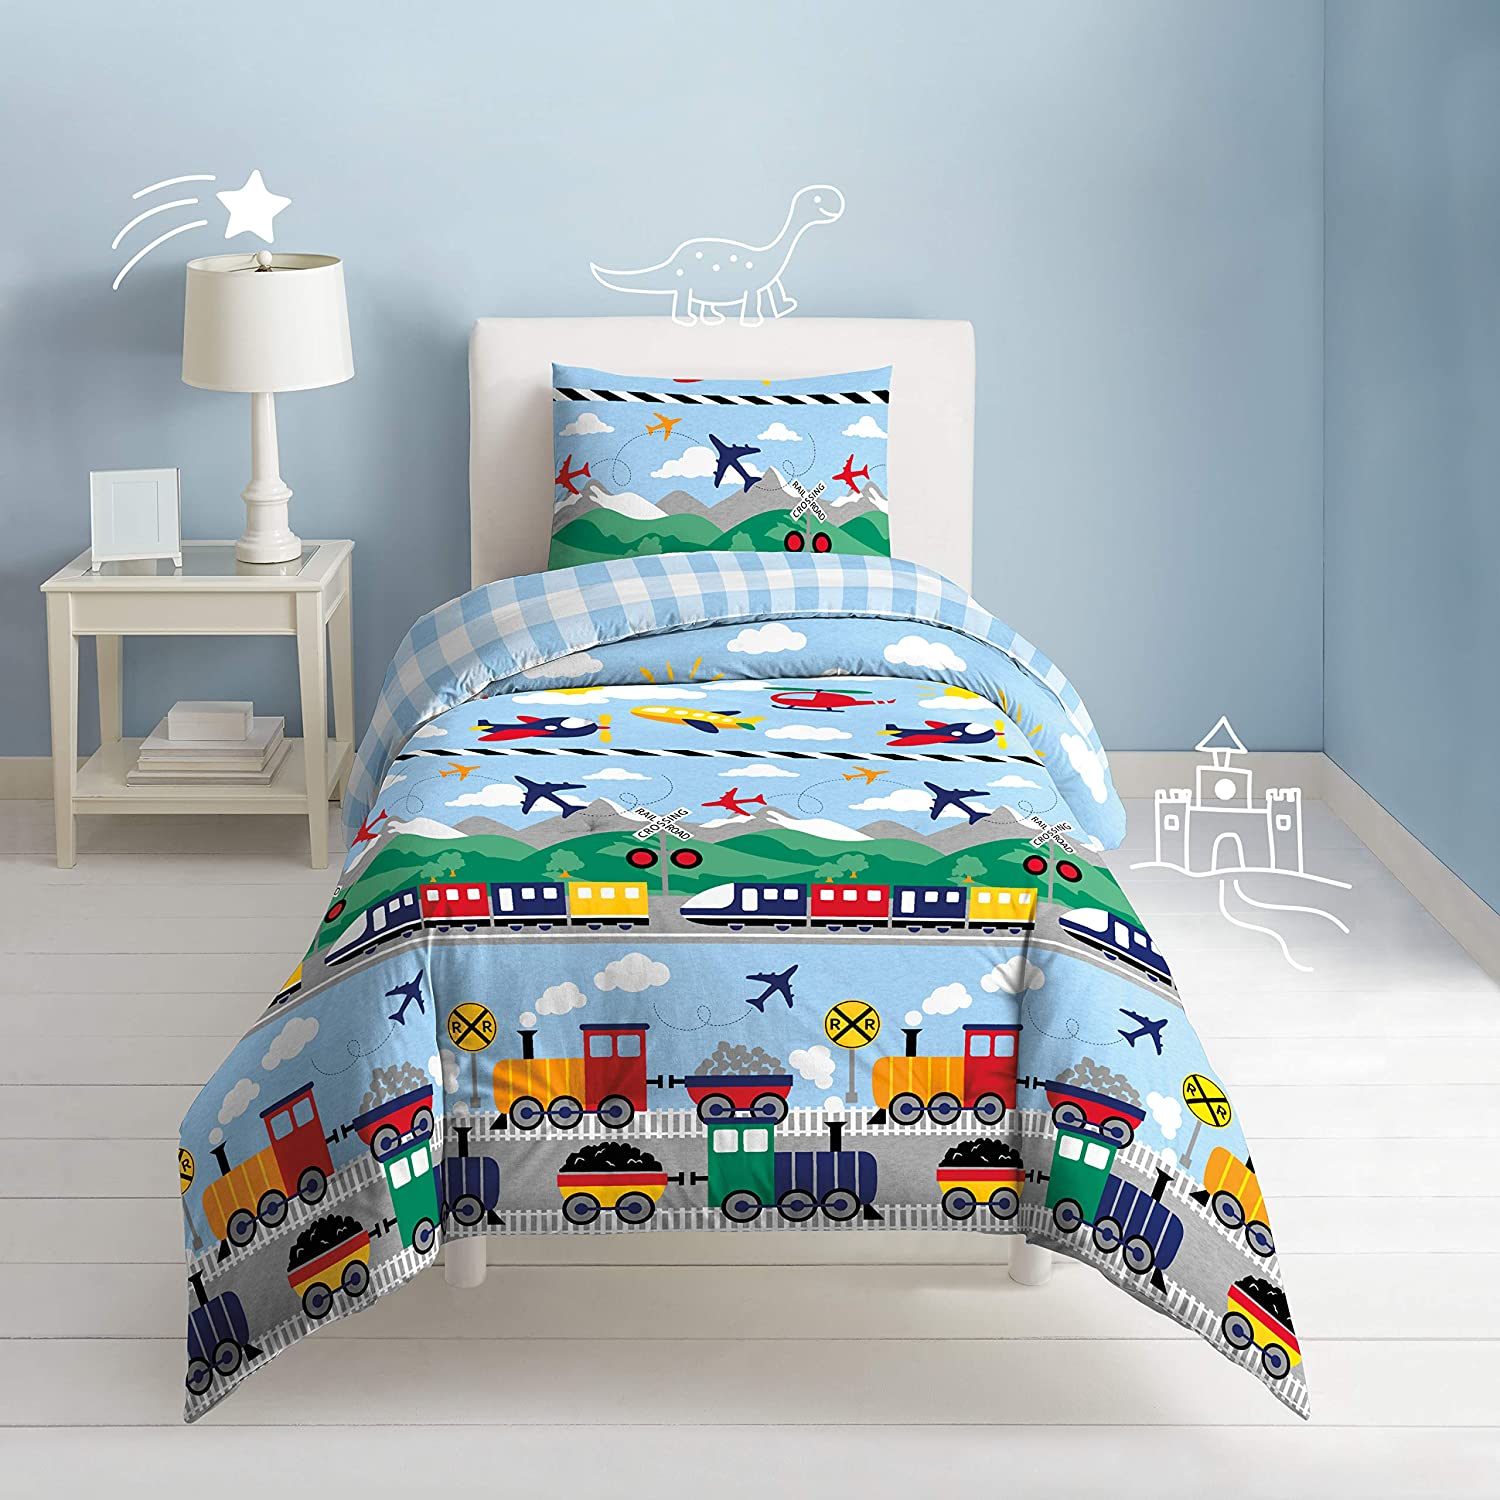 dream FACTORY Trains and Planes Twin Comforter Set, Blue